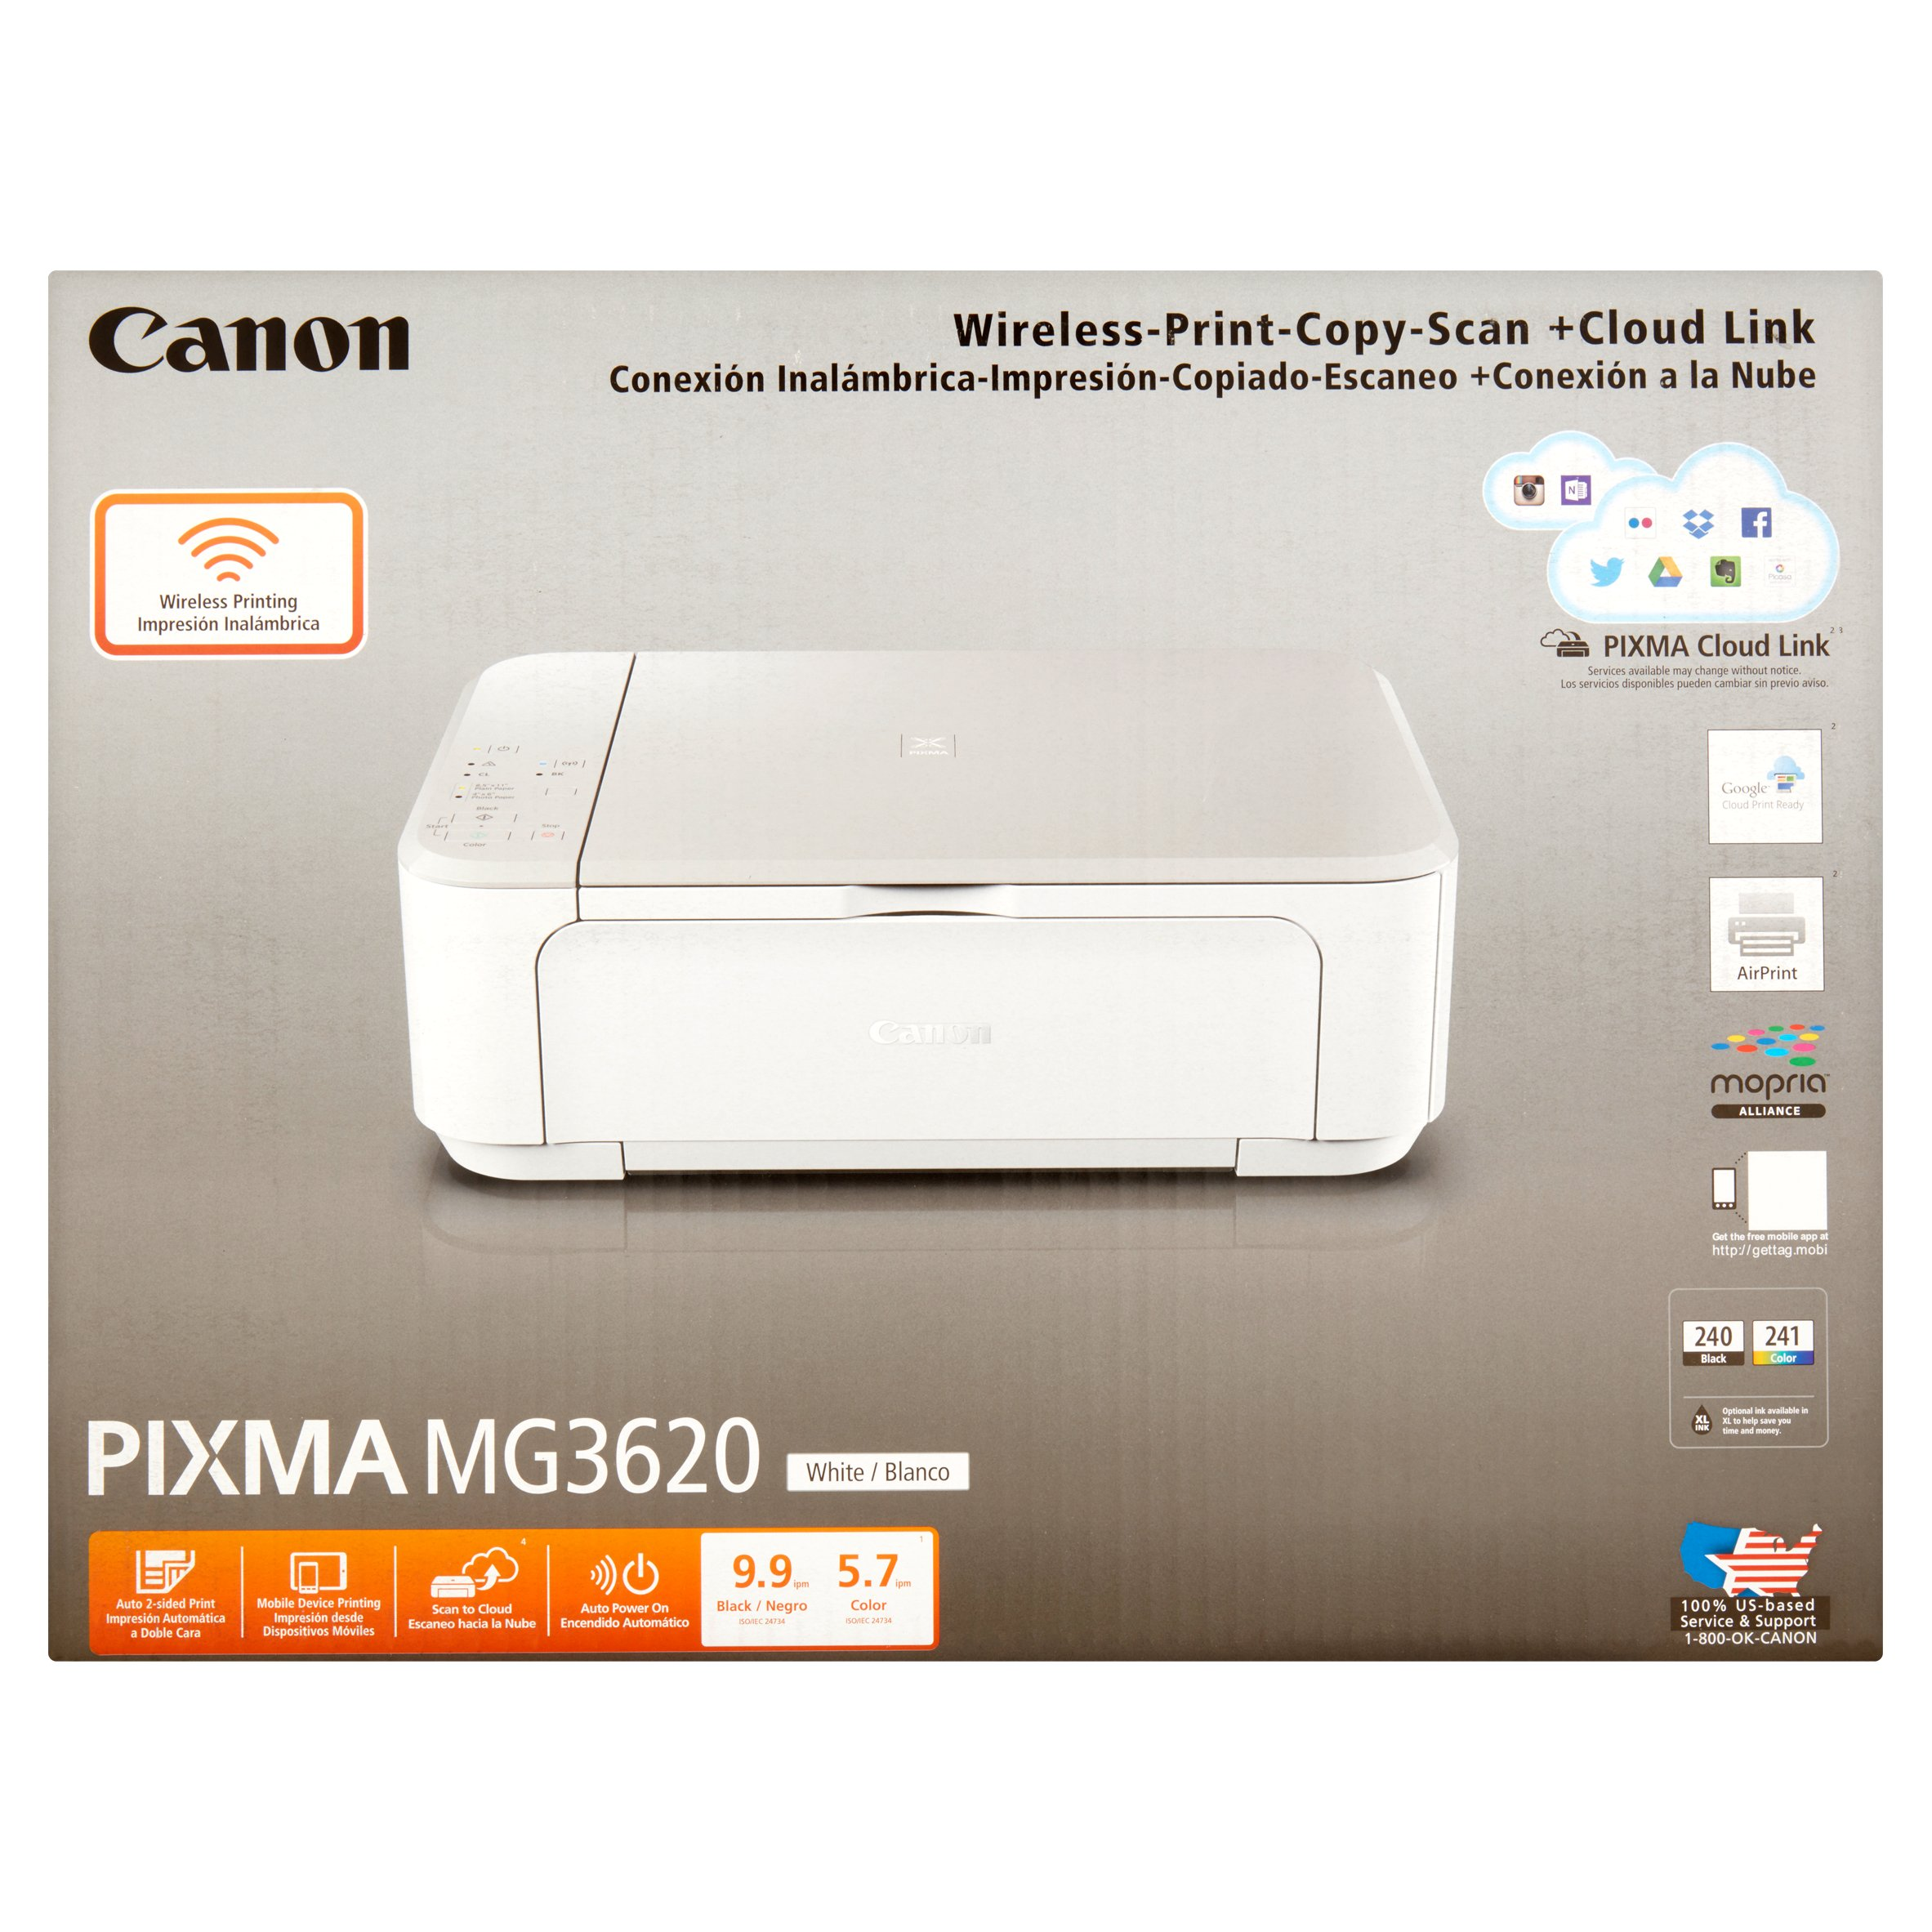 Canon White Wireless-Print-Copy-Scan + Cloud Link